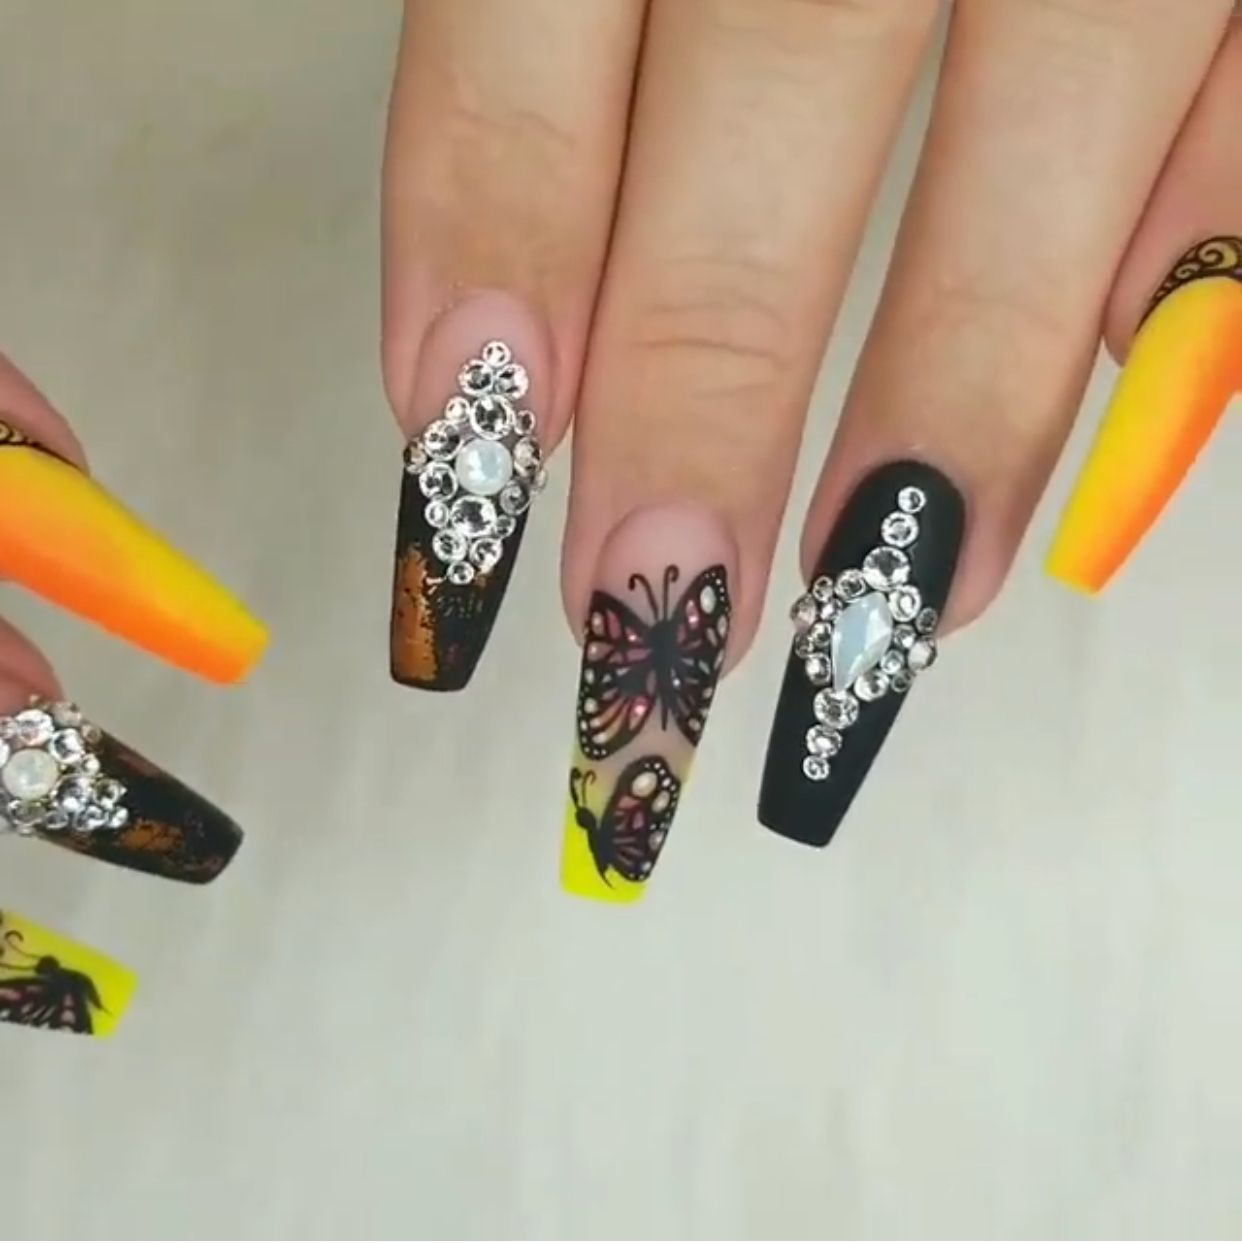 Pin By India Wylie On Nails Pinterest